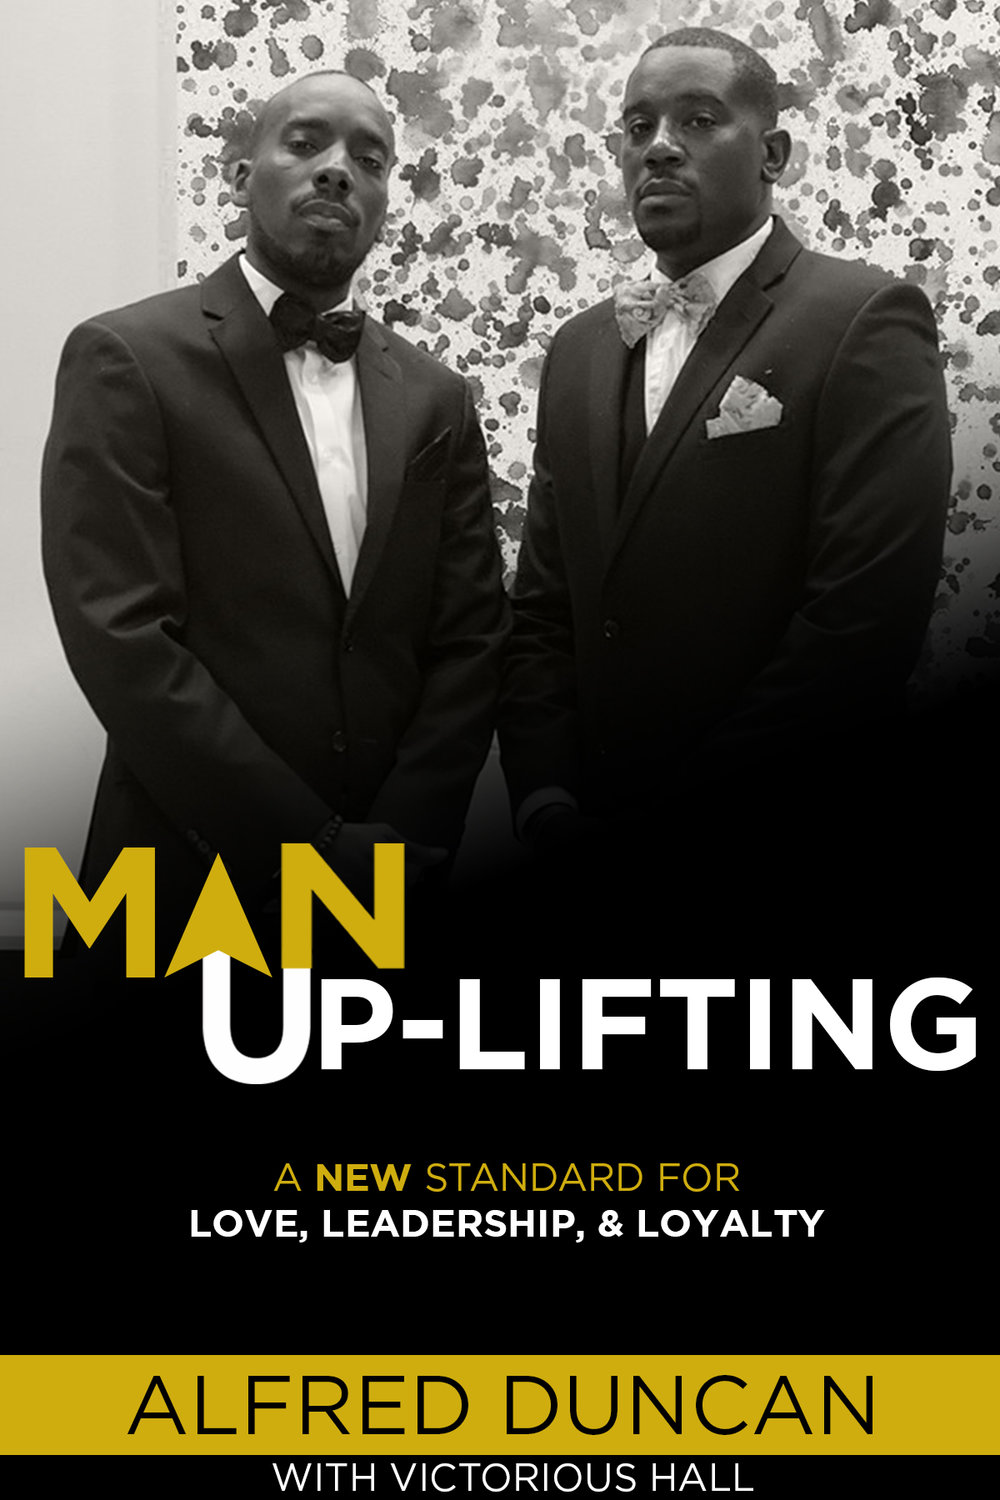 "Man UP-Lifting by Alfred Duncan with Victorious Hall confronts the misconceptions about men, relationships and family. Alfred and Victorious challenge stereotypes and ideas spoon-fed by popular culture, while welcoming you into the minds of black men who have accepted the call to ""man up,"" be faithful, pursue God, marriage, leadership and loyalty. Man UP-Lifting is motivating and thought-provoking and provides a new perspective for today's generation."